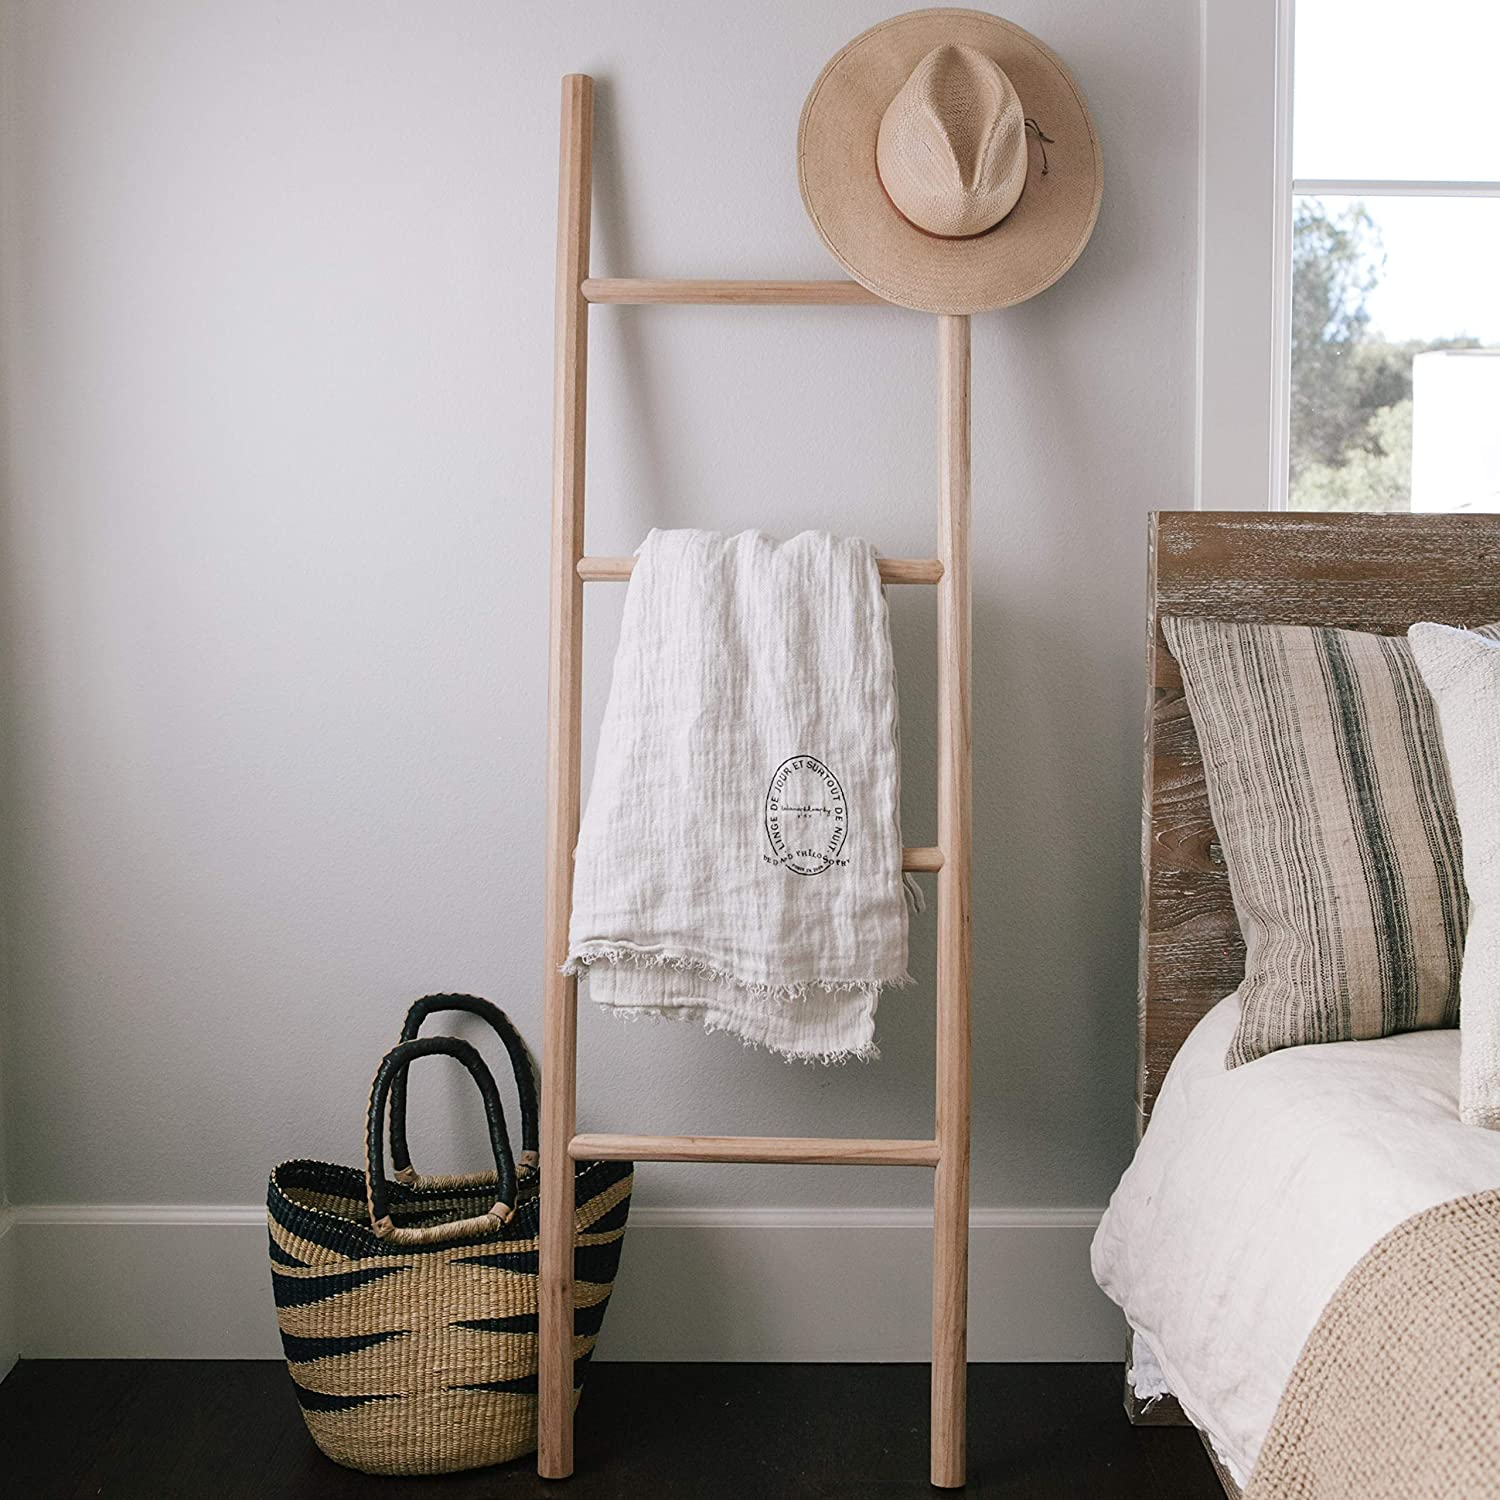 Natural Wood Blanket-Ladder by Sandstone & Sage| Designer Finds: Bringing Natural Elements Into Your Home | Jade and Sage Interior Design | eDesign Tribe Blogs